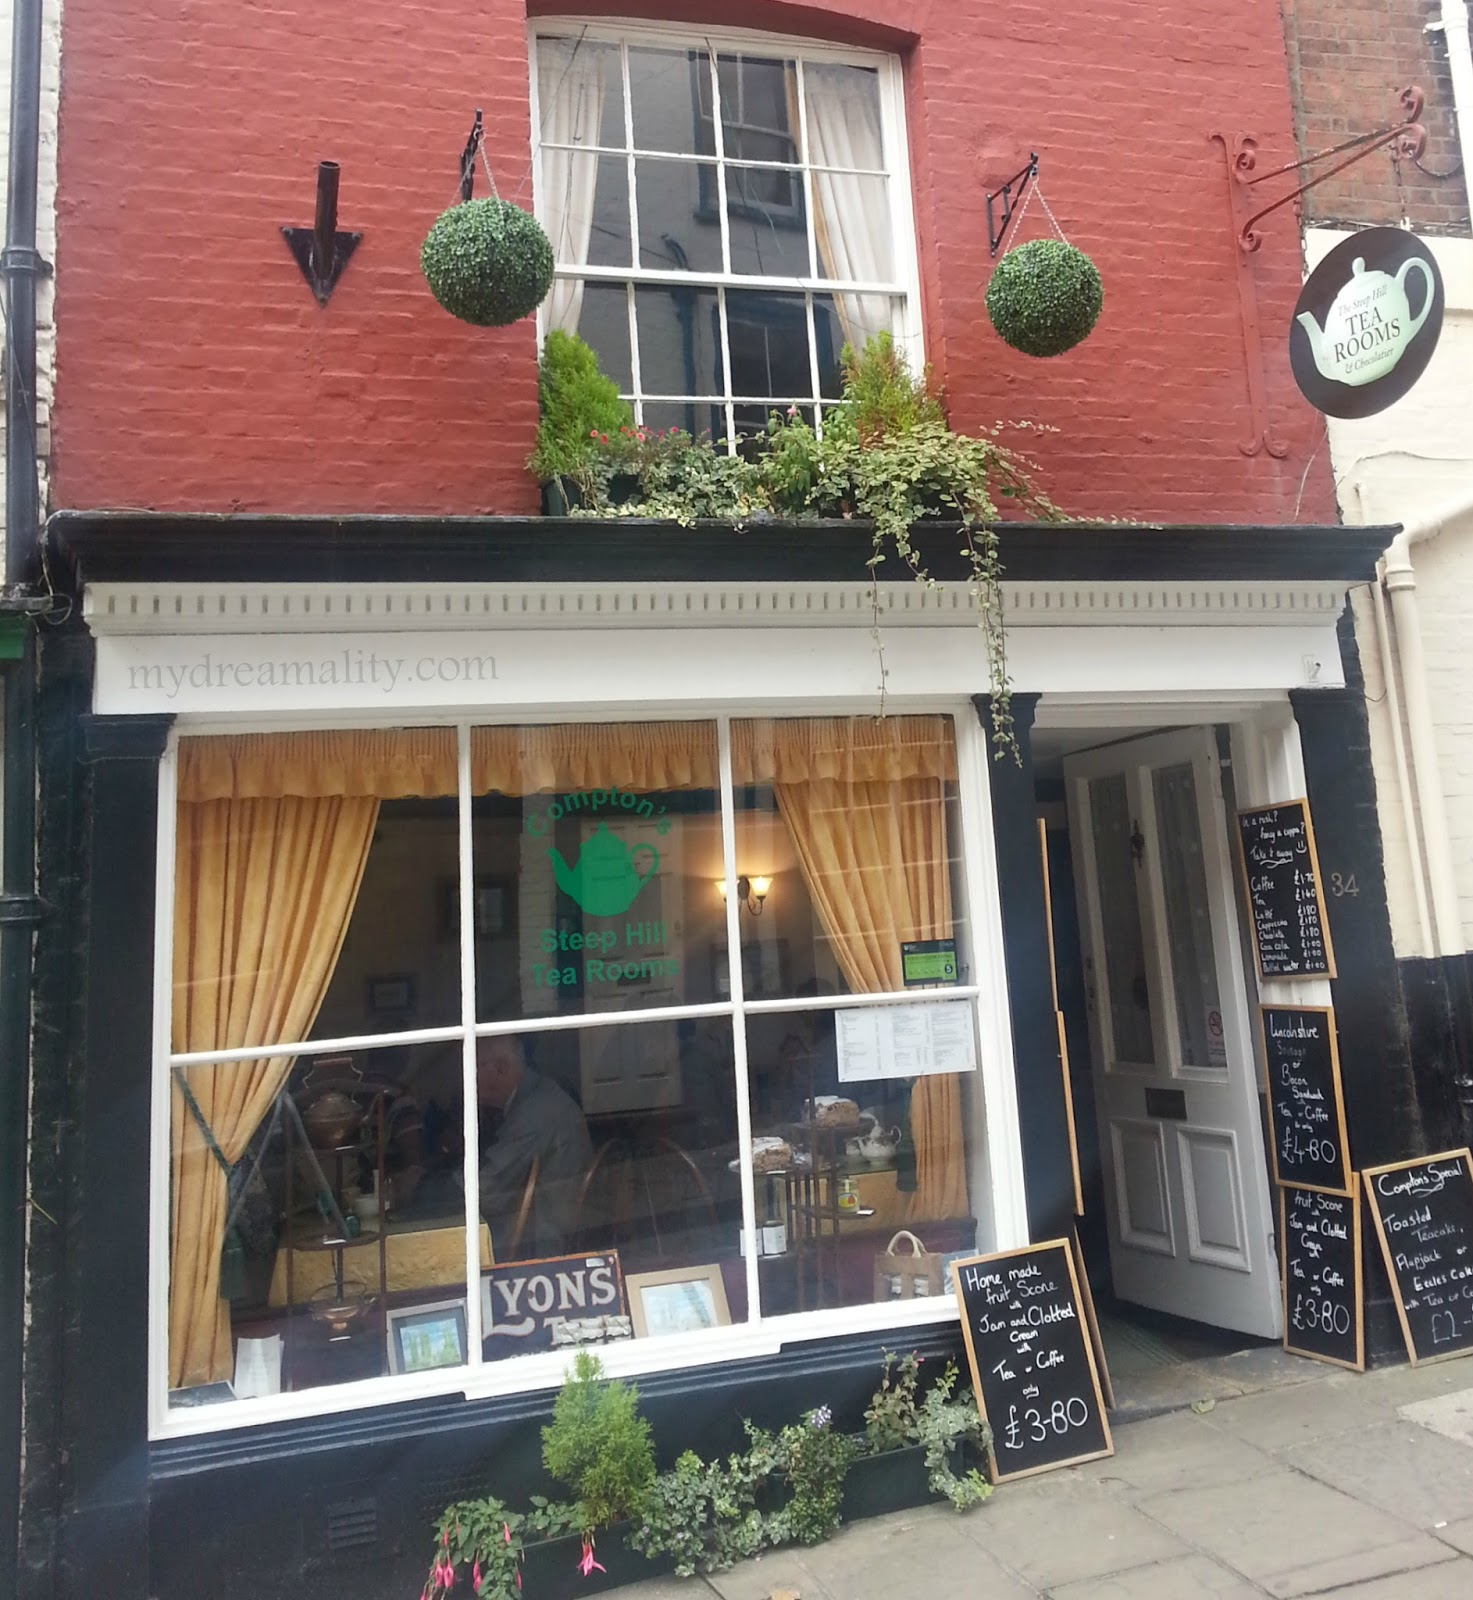 Compton's Steep Hill Tea Room in Lincoln